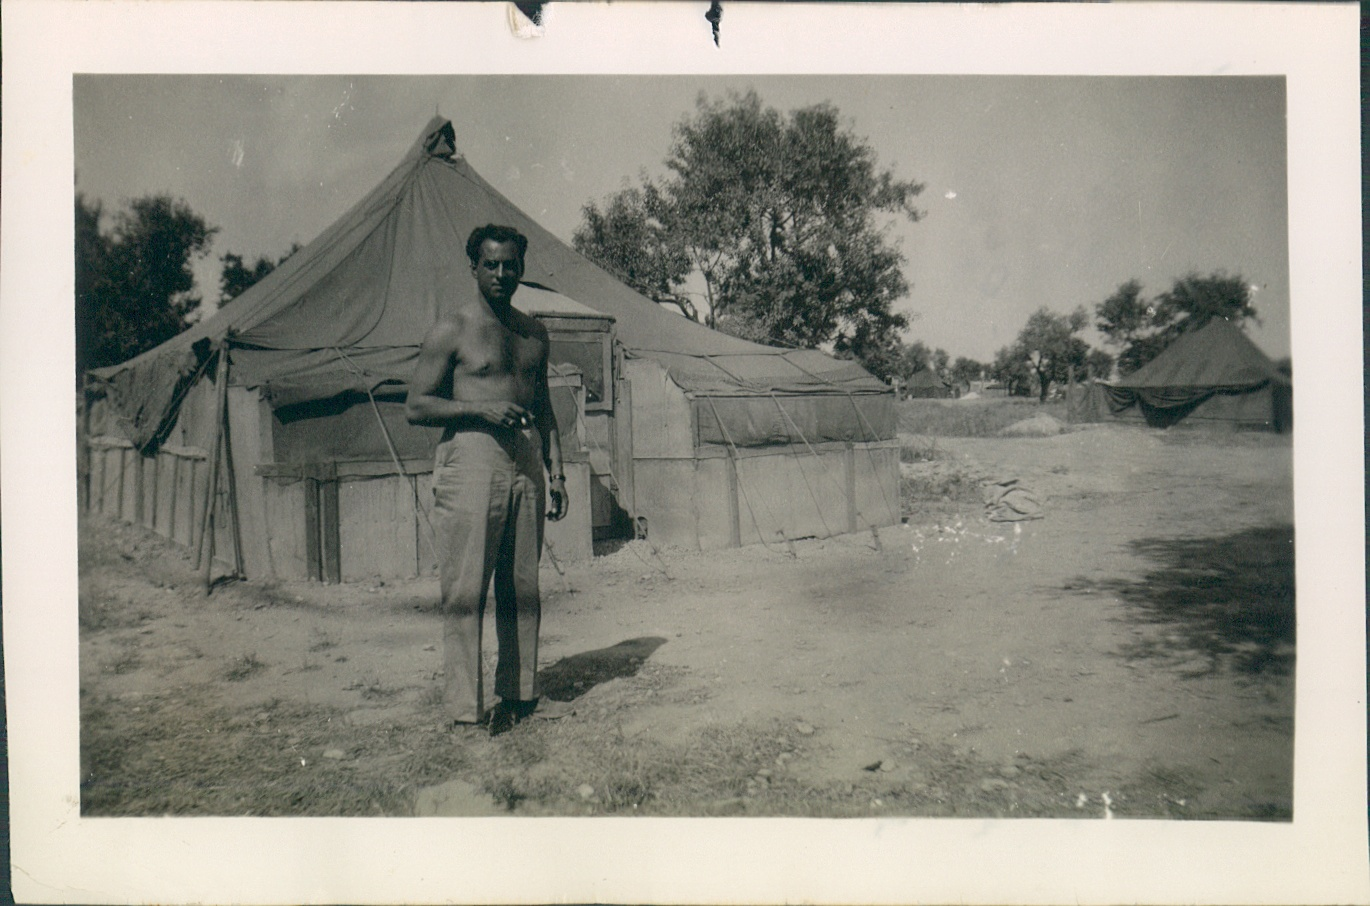 """August 3rd 1944 Italy  """"My country home with a few extensions."""" - E. Carbone."""